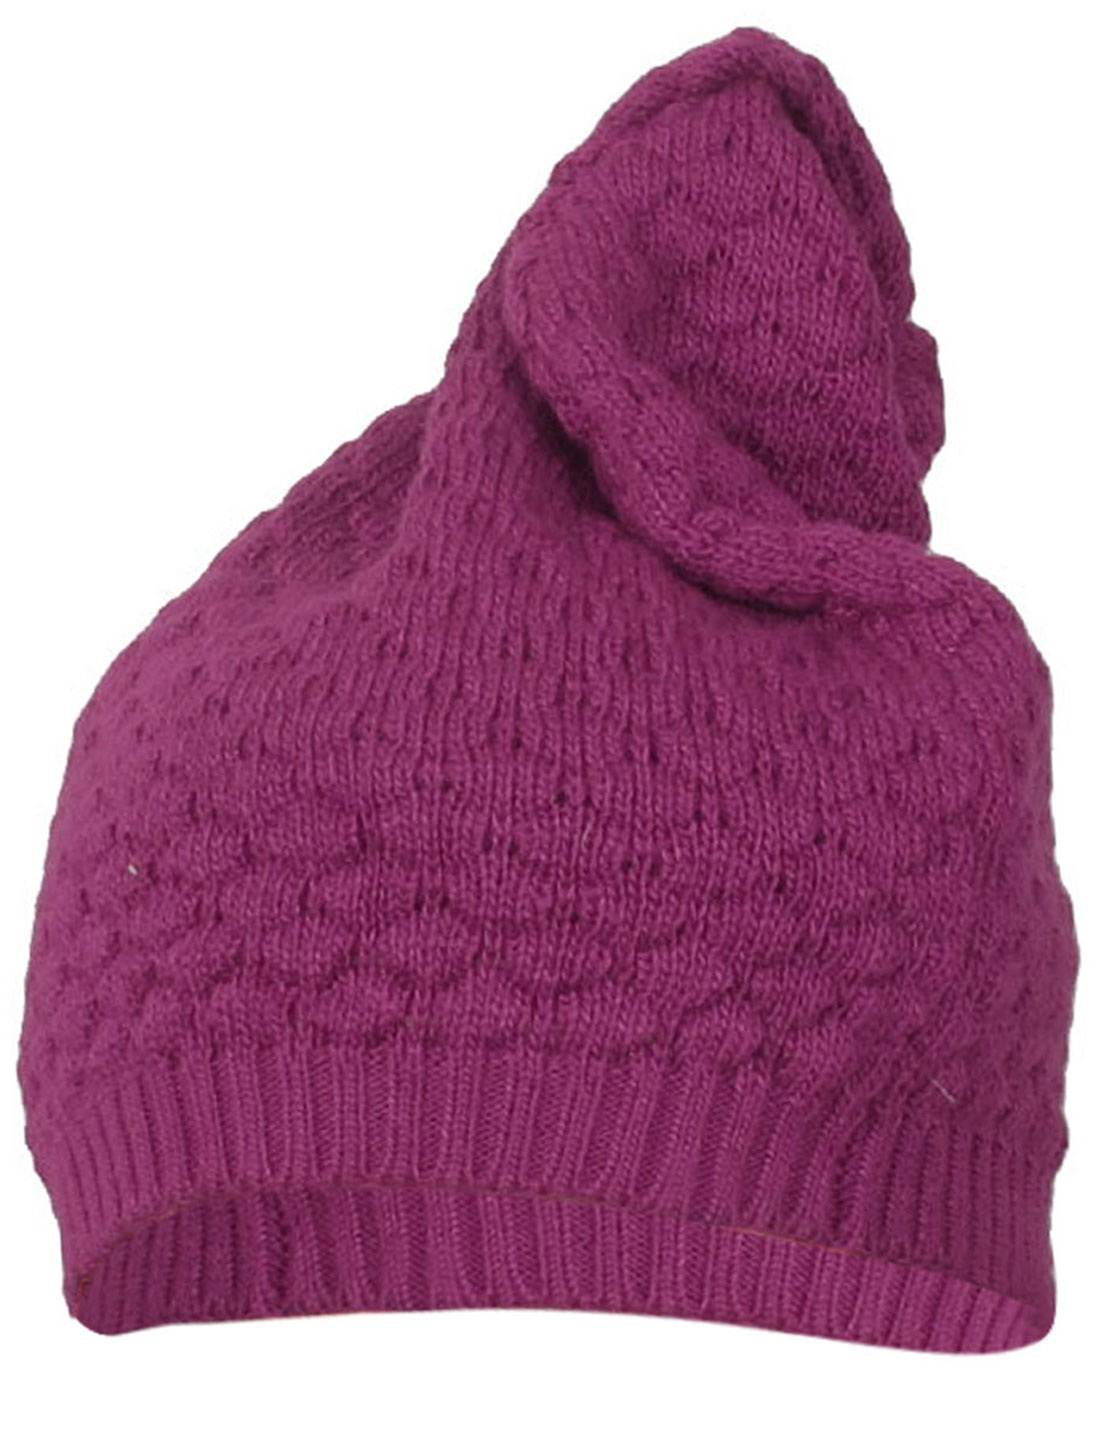 Fushcia Fish Scales Texture Winter Warmer Knitted Beanie Hat for Ladies